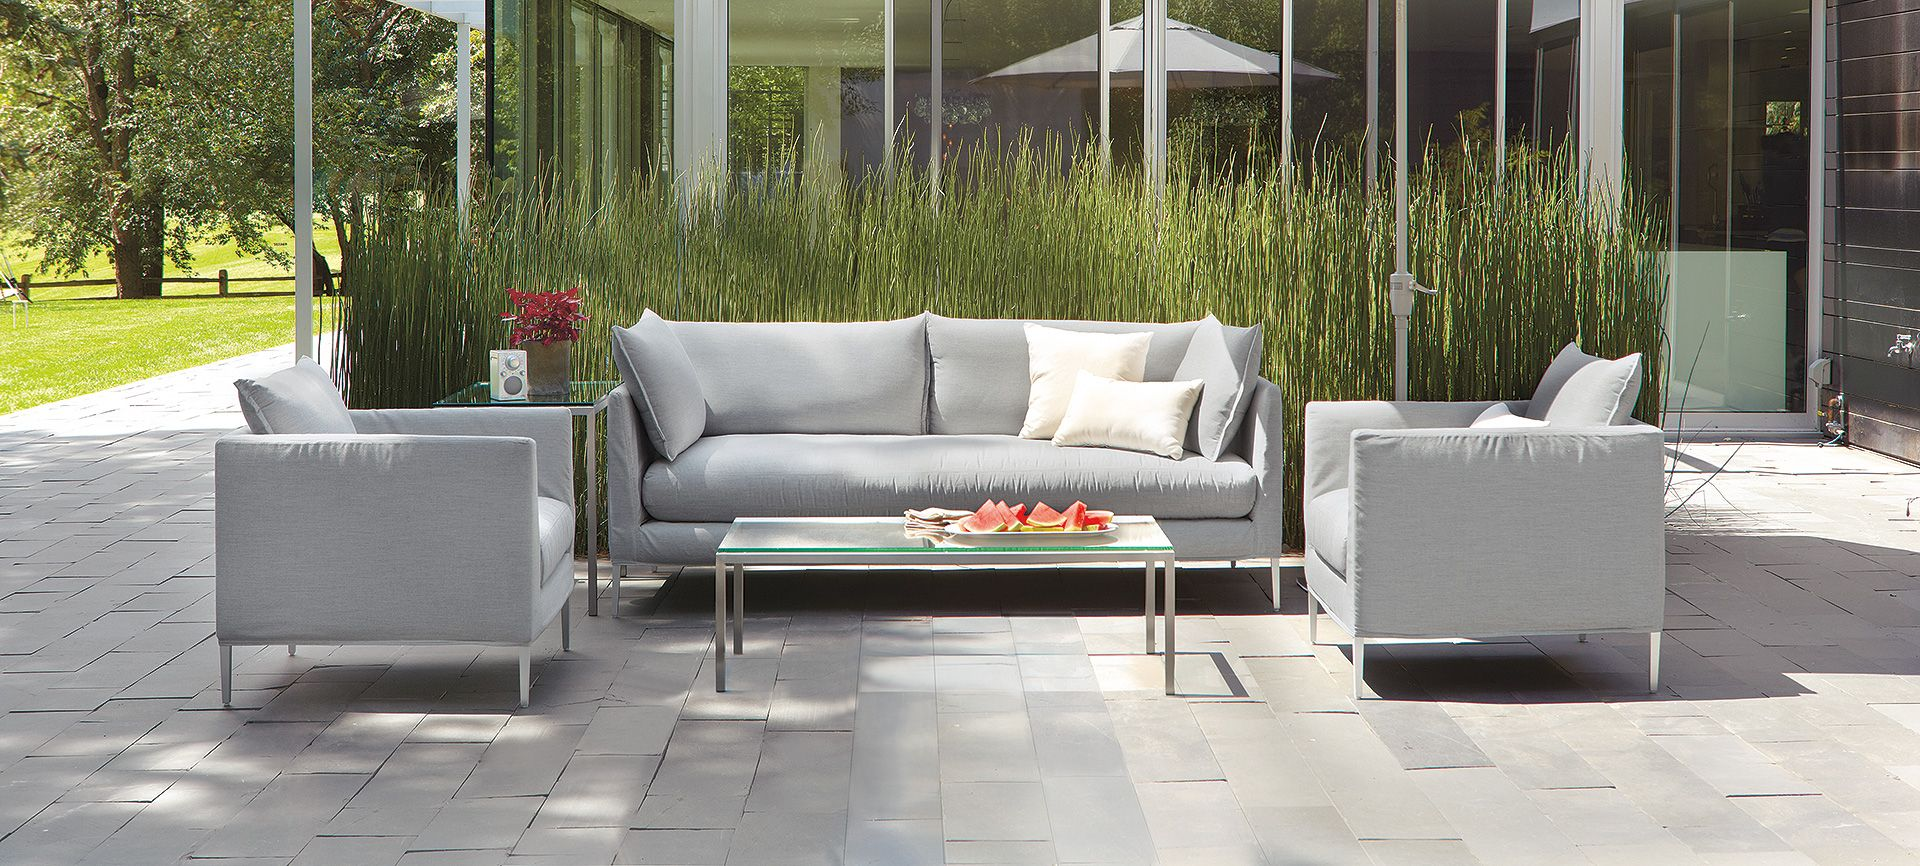 Whats inside our outdoor sofas marine grade plywood outdoor learn whats inside room boards quality outdoor sofas sectionals and chairs from sunbrella parisarafo Choice Image